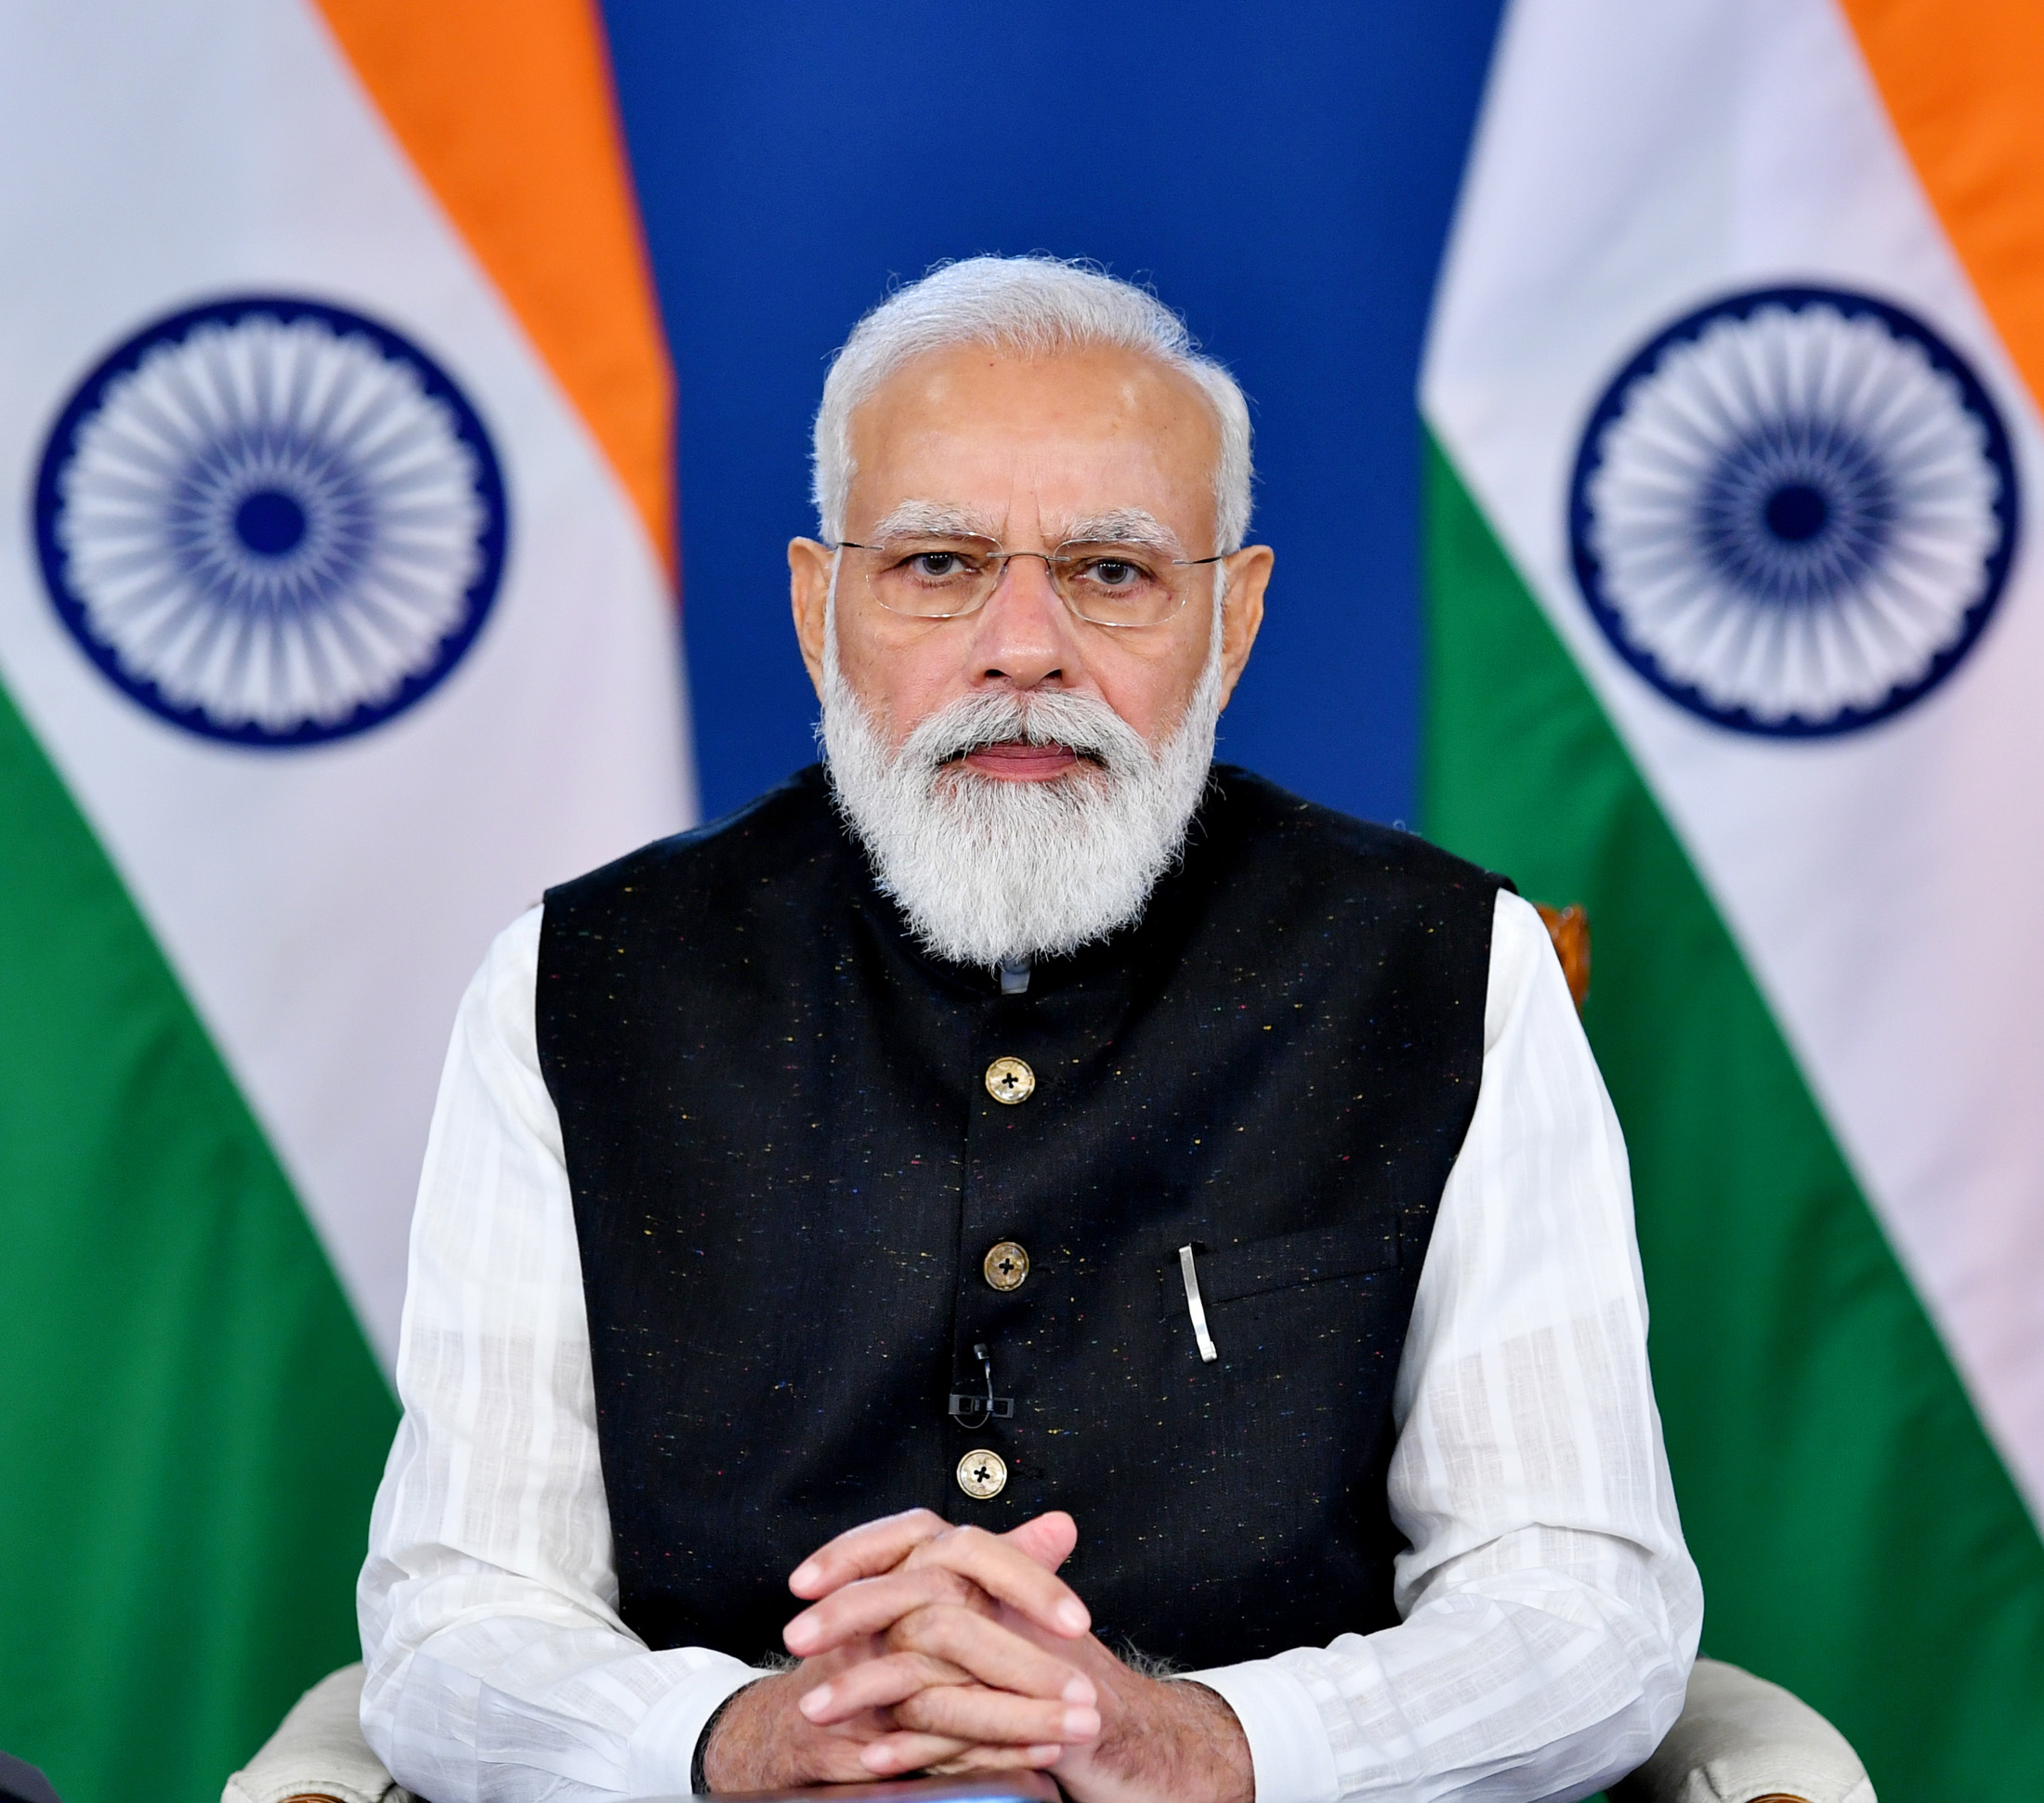 The Prime Minister, Shri Narendra Modi virtually participates in the G20 Extraordinary Summit on Afghanistan, in New Delhi on October 12, 2021.